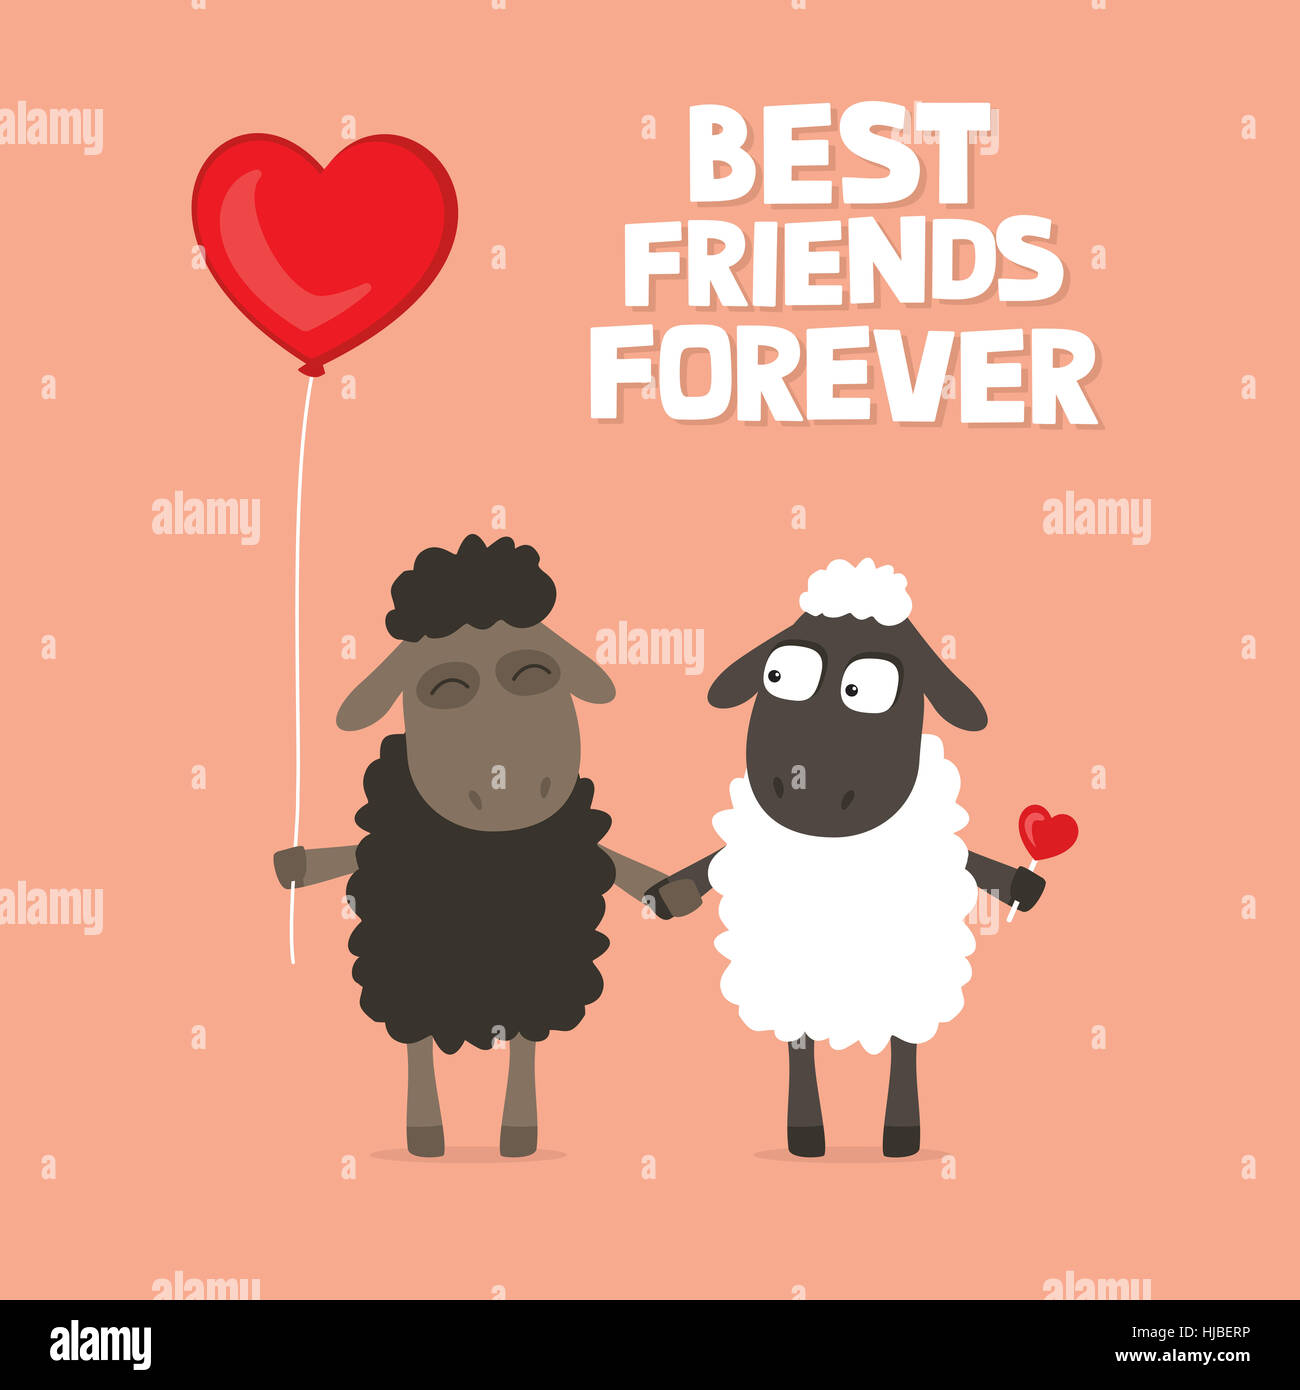 valentine u0027s day card with cute cartoon sheep holding hands with